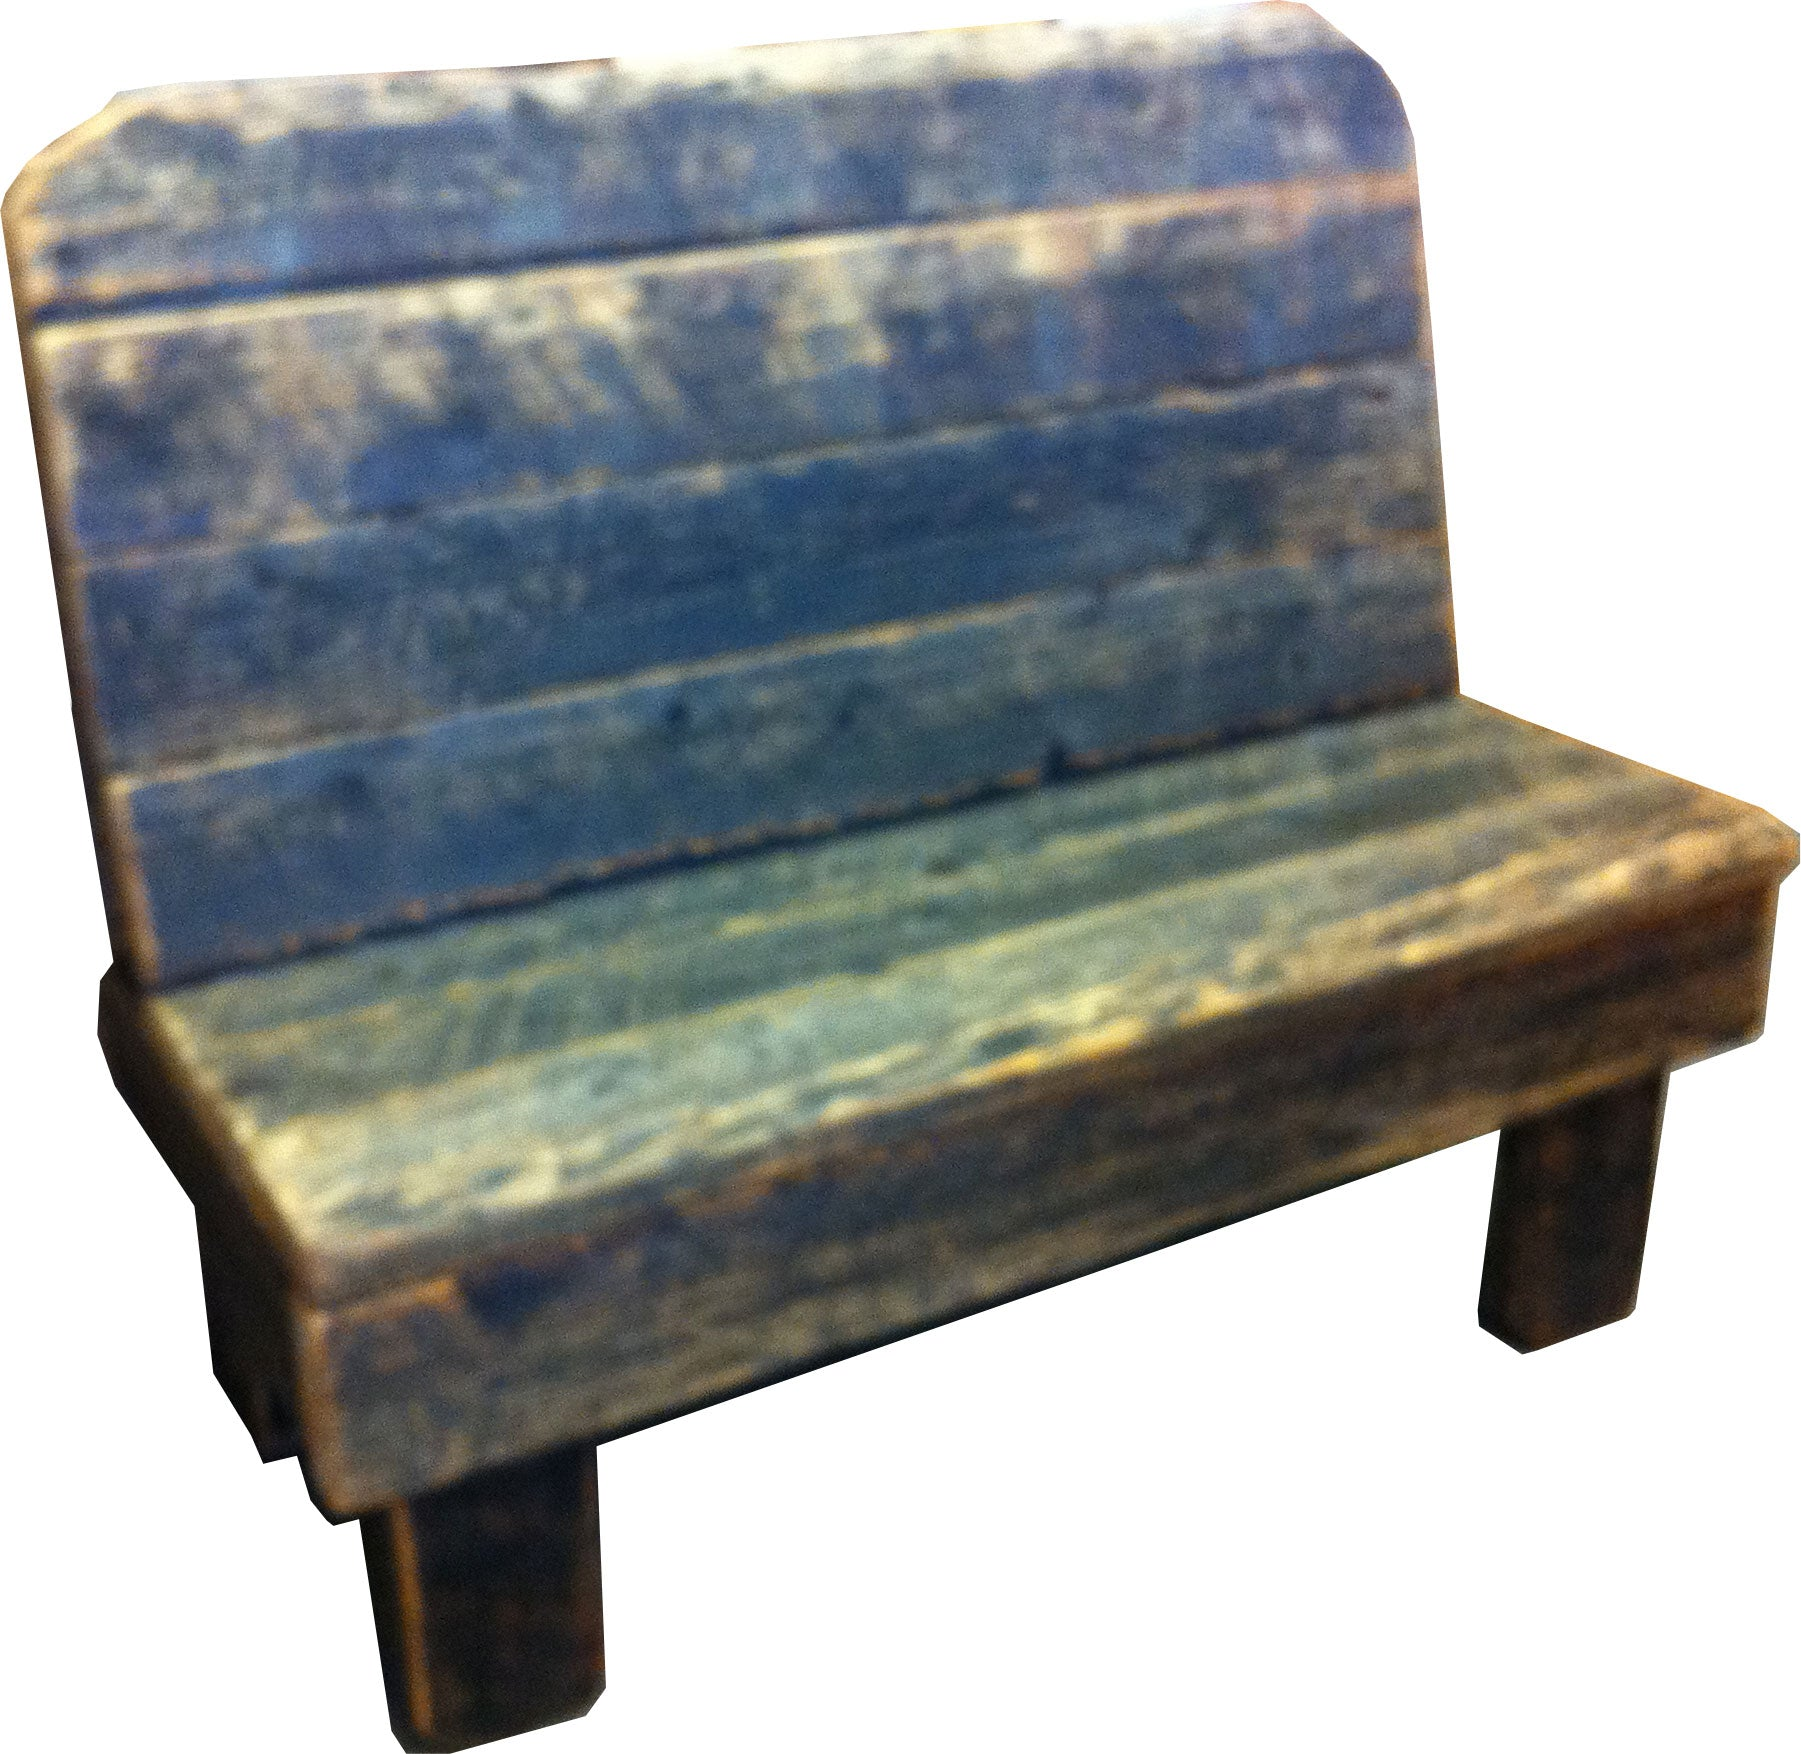 Barnwood Double Bench